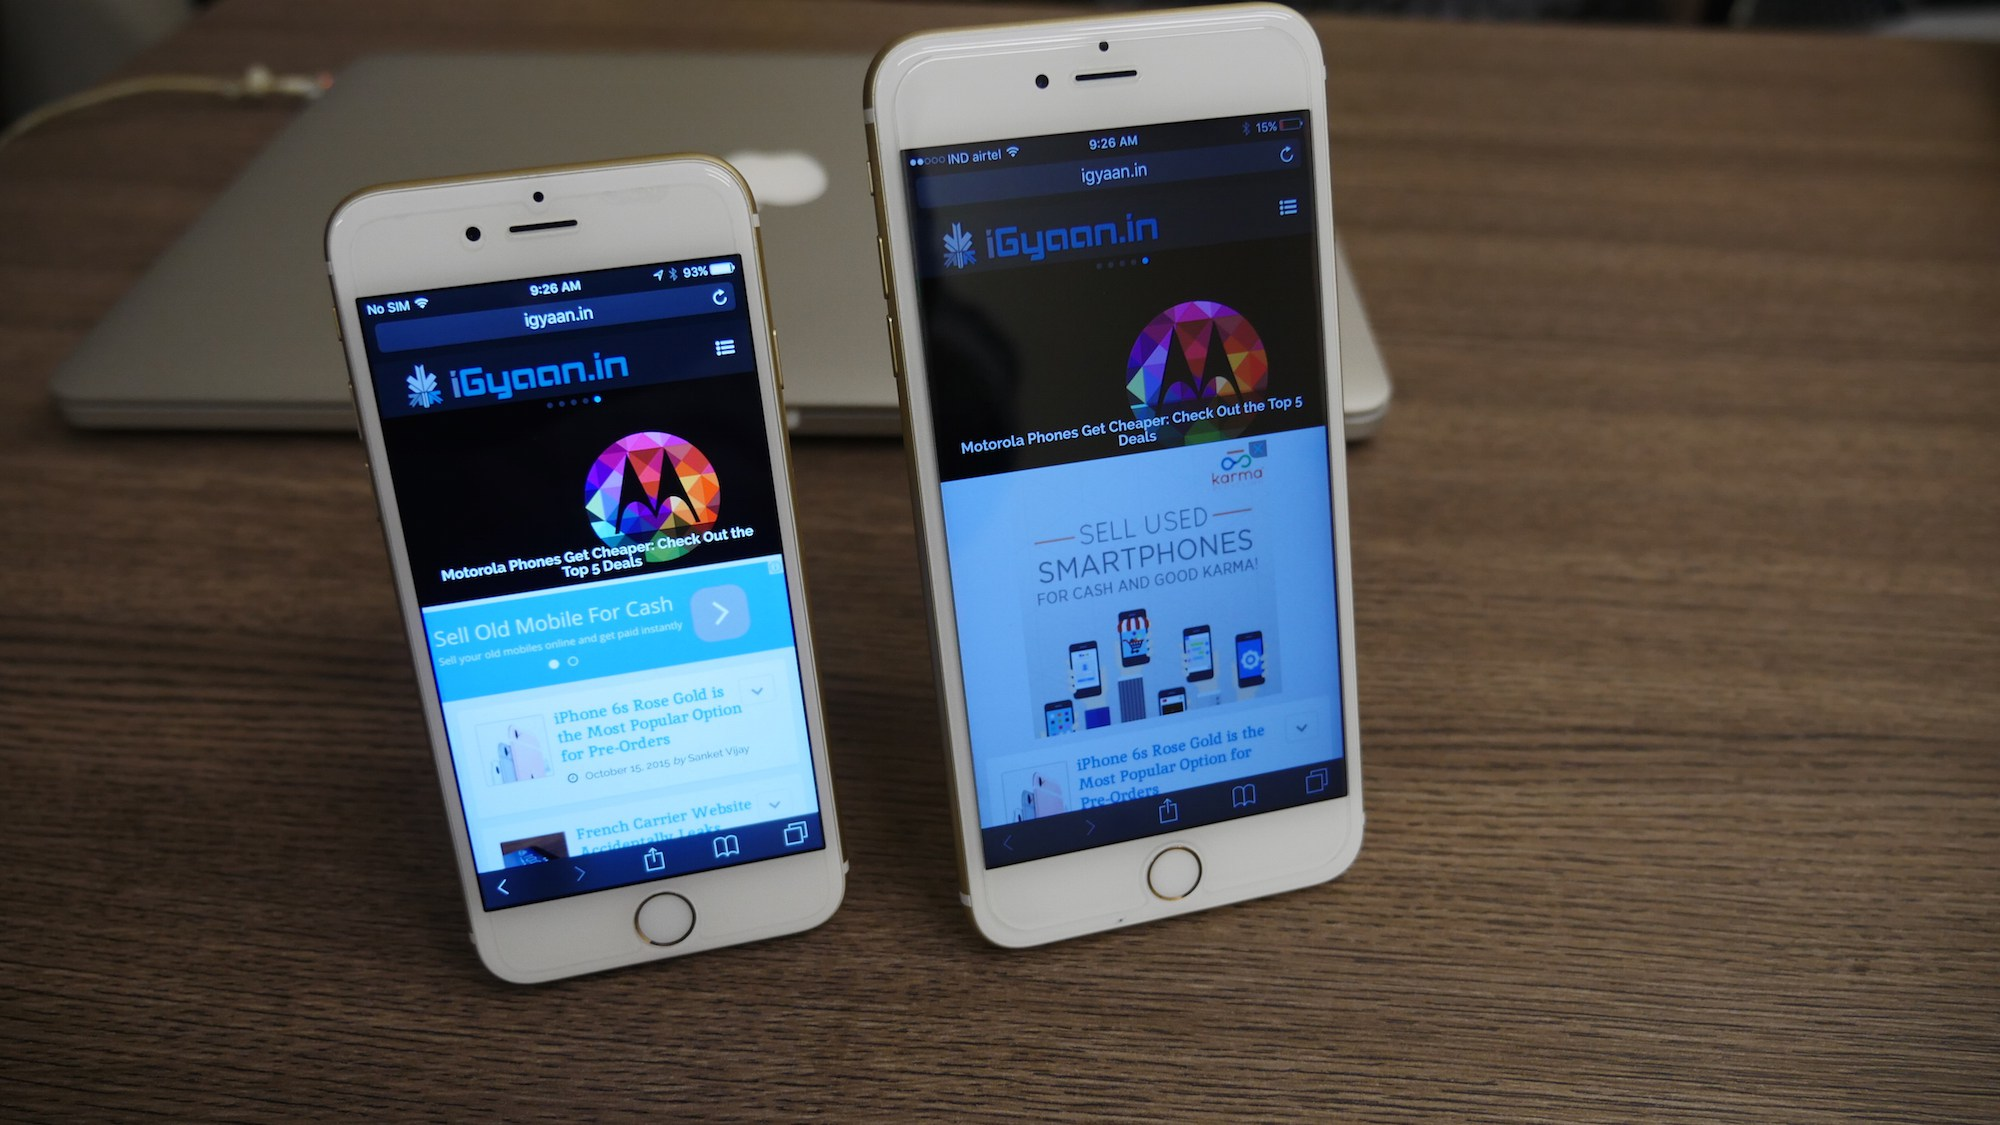 Iphone 6s Plus Live Wallpaper: Live Wallpaper IPhone 6s Not Working